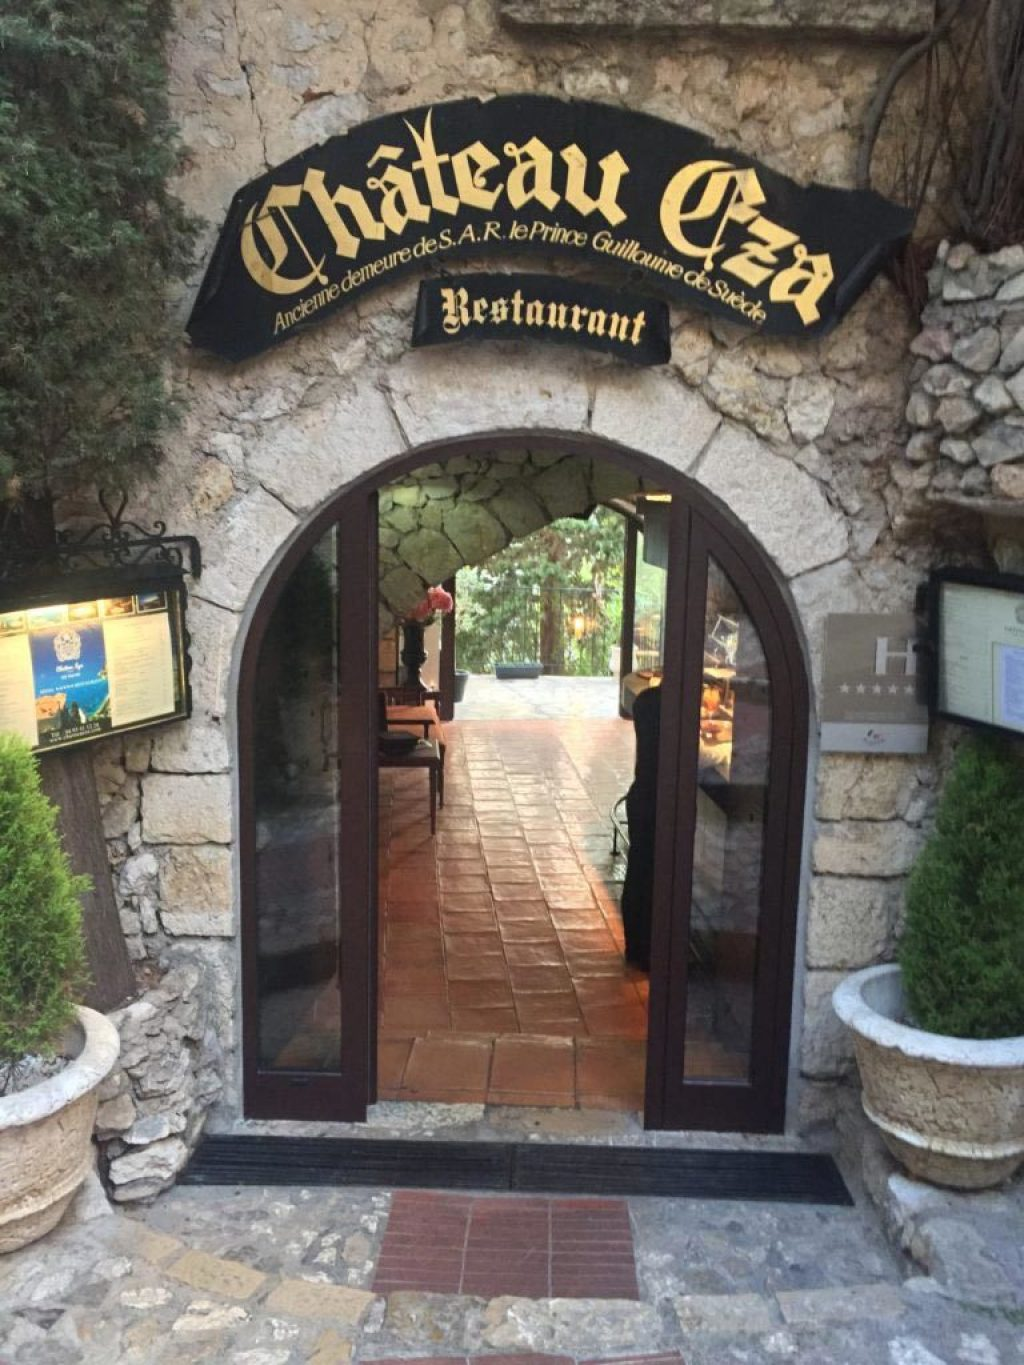 Entrance, Chateau Eza in Eze. Excellent food & spectacular views.